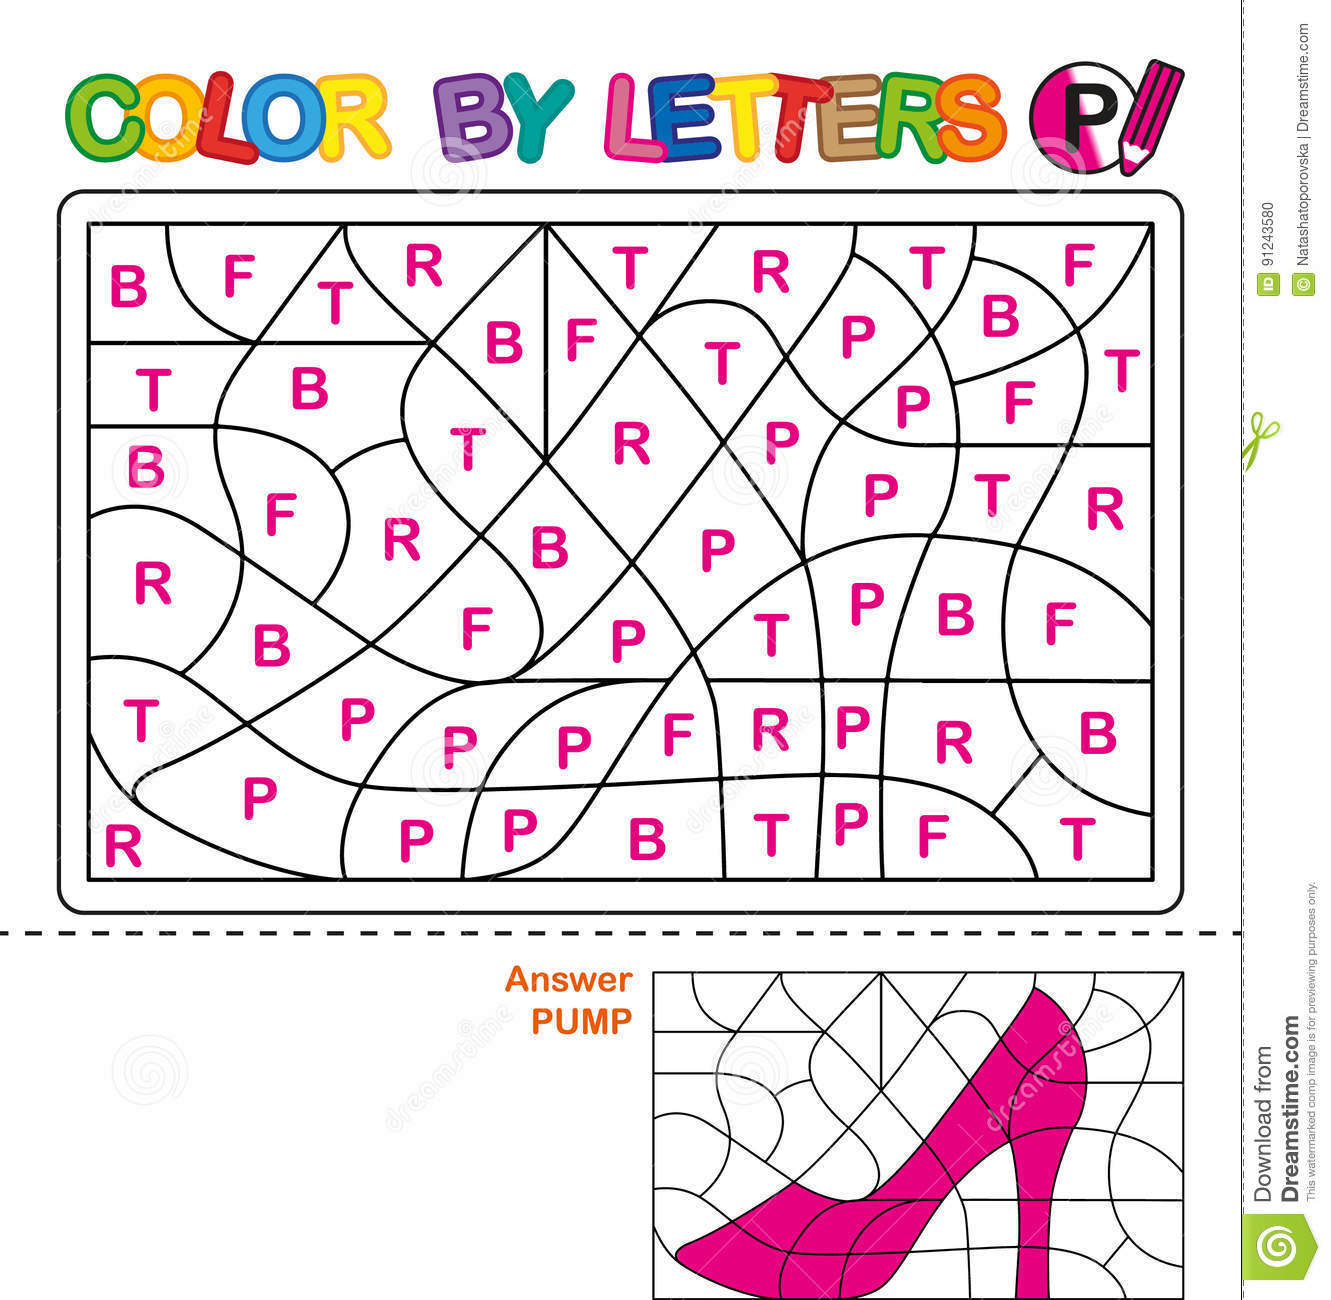 Color by letters. Learning the capital letters of the alphabet. Puzzle for children. Letter P. Pumps. Preschool Education.